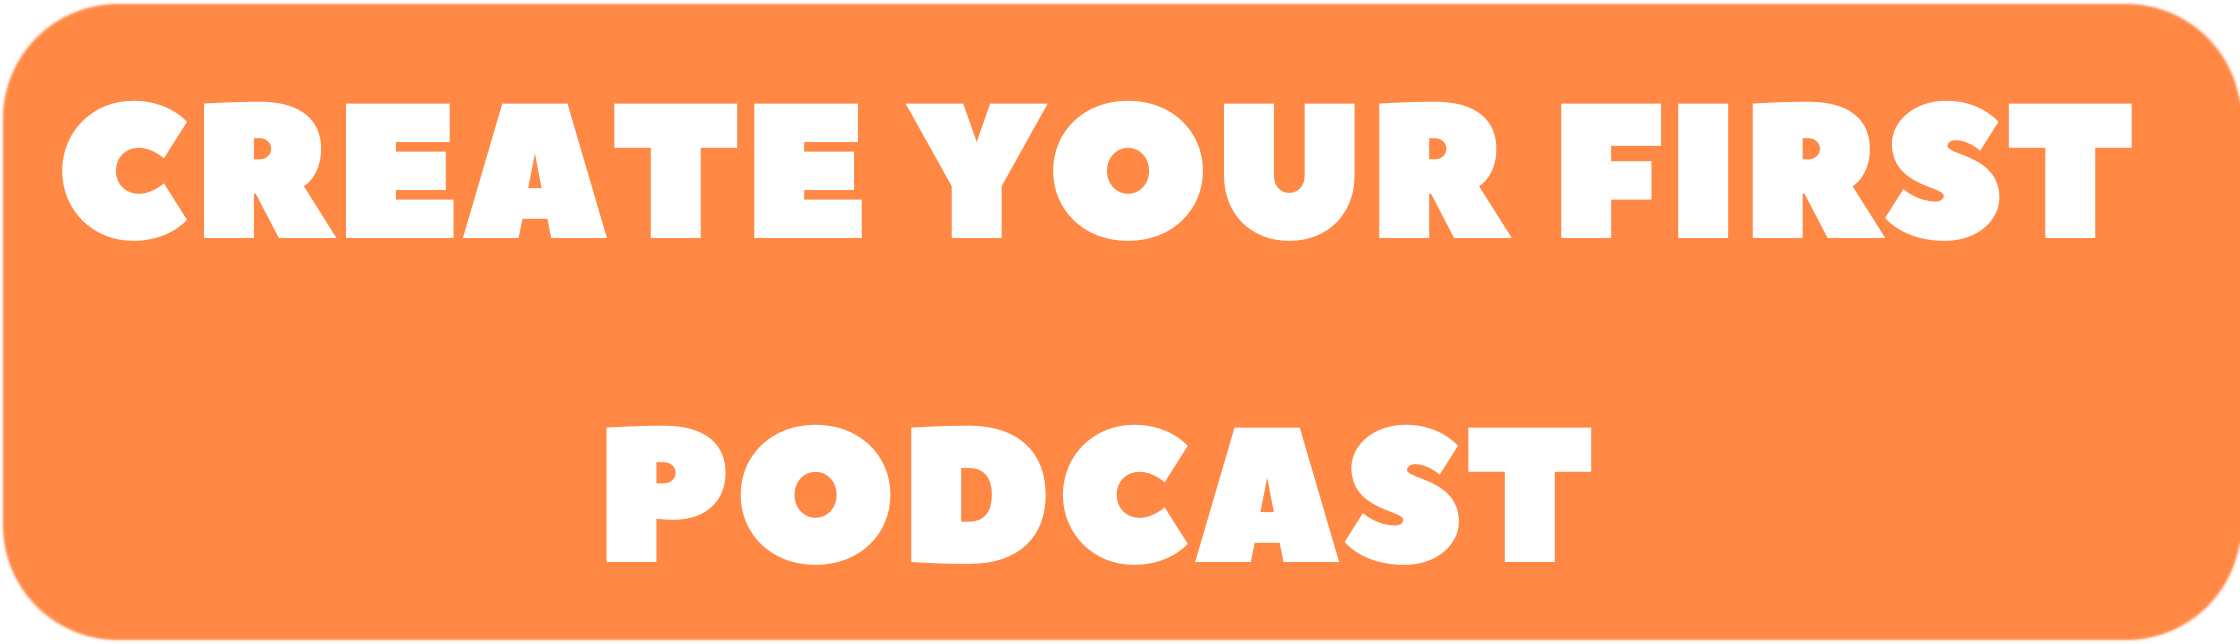 Create Your First Podcast